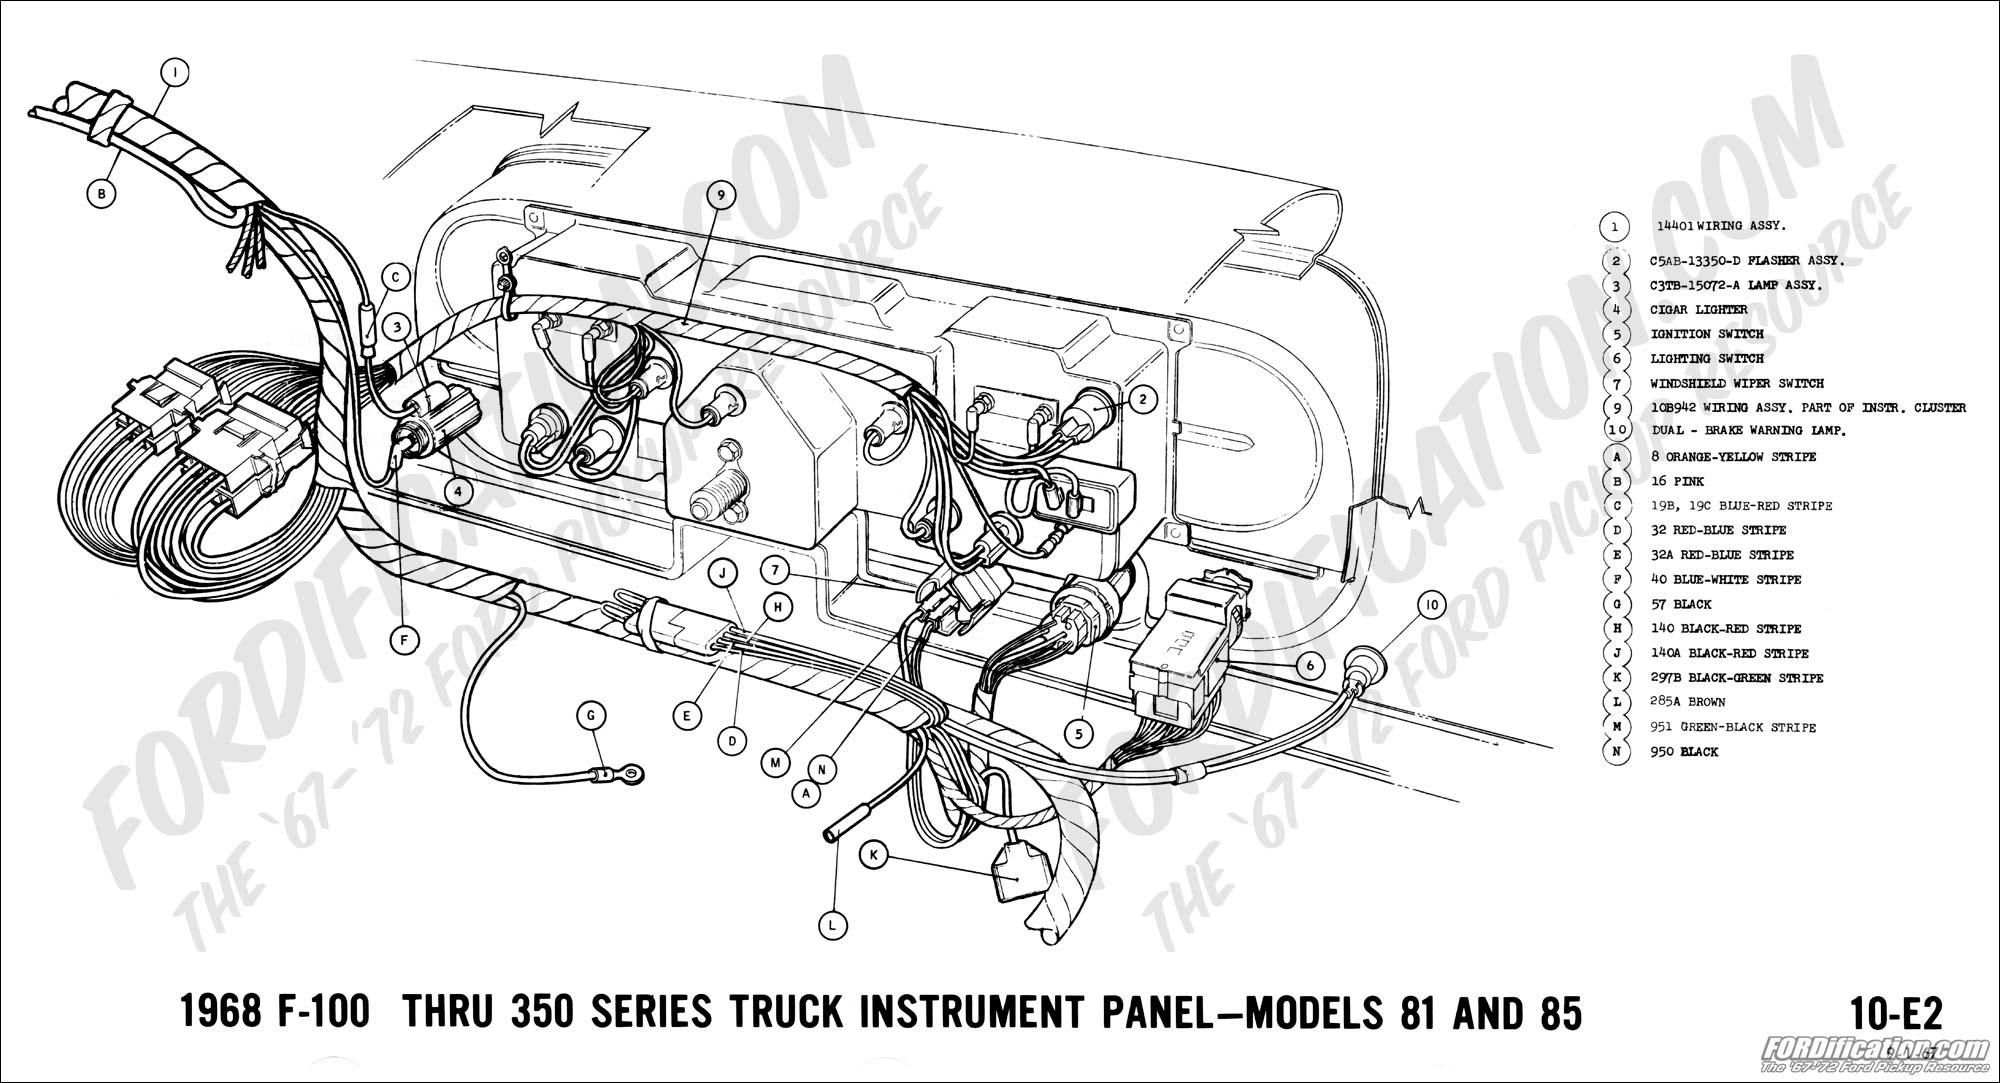 Ford Truck Technical Drawings And Schematics Section H Wiring 1970 Datsun Alternator Diagram 1968 F 100 Thru 350 Instrument Panel